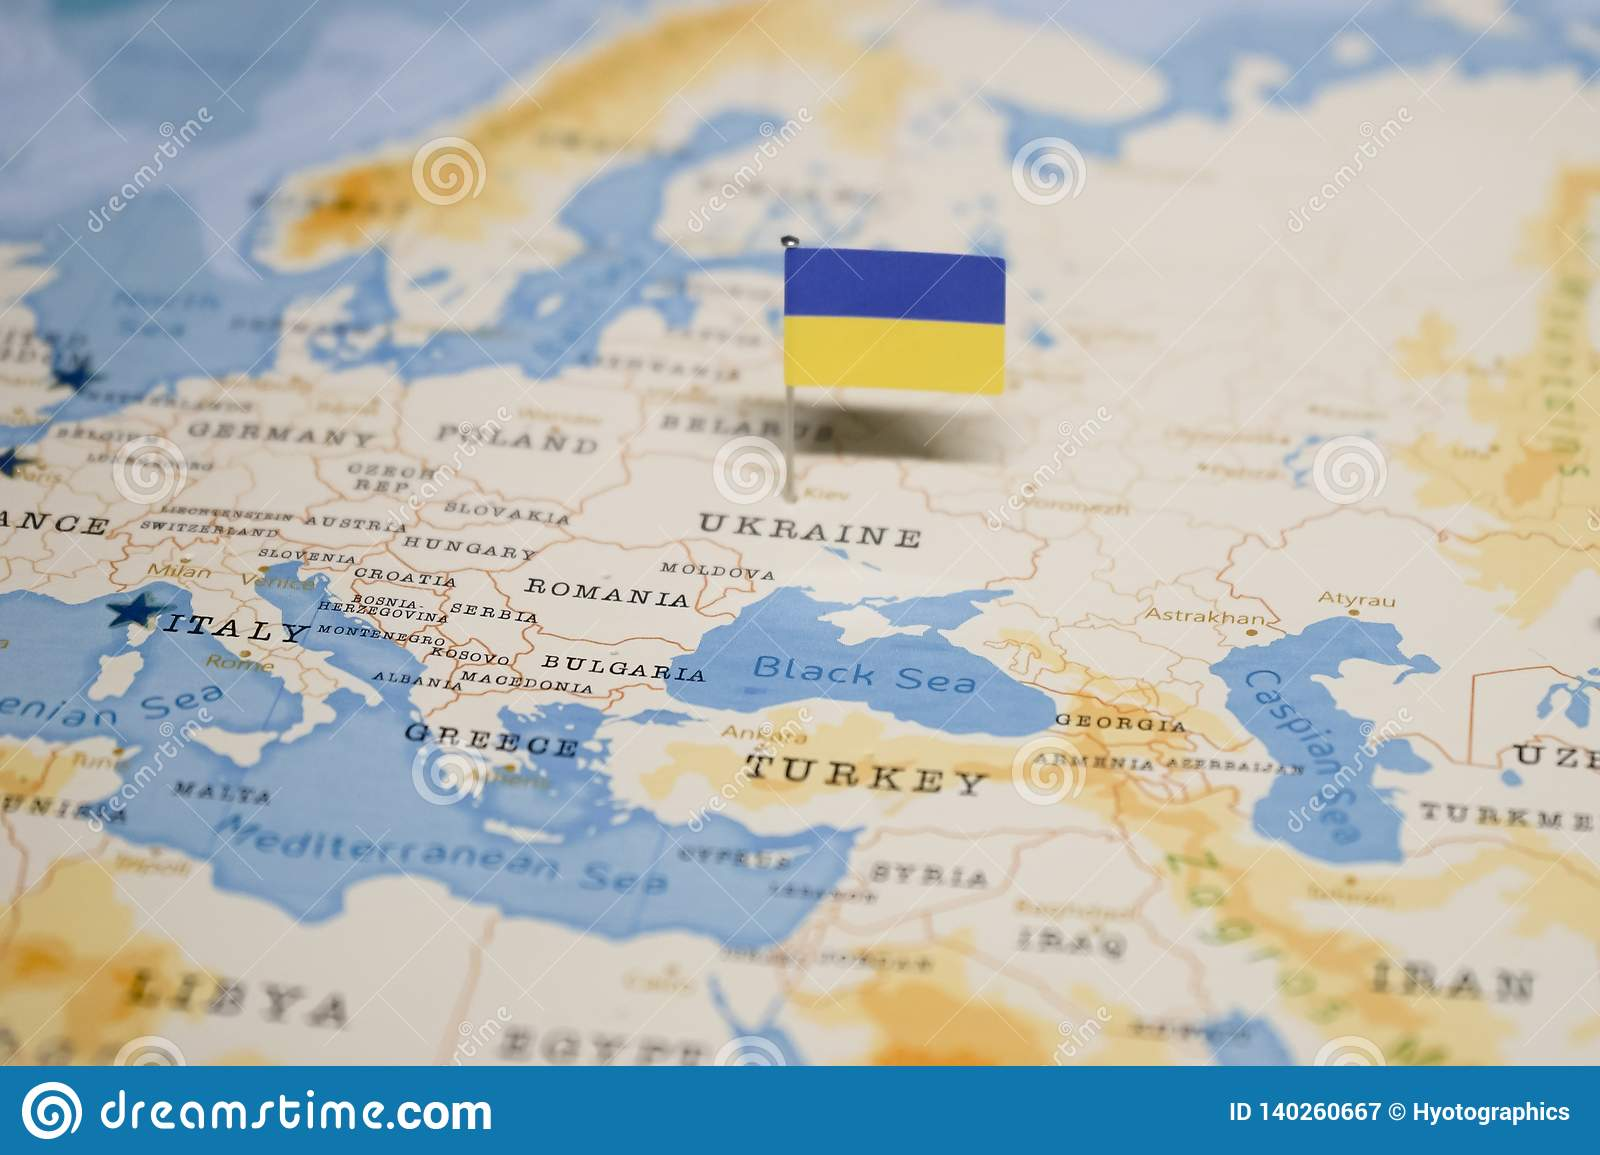 Picture of: The Flag Of Ukraine In The World Map Stock Image Image Of Arrival Locations 140260667